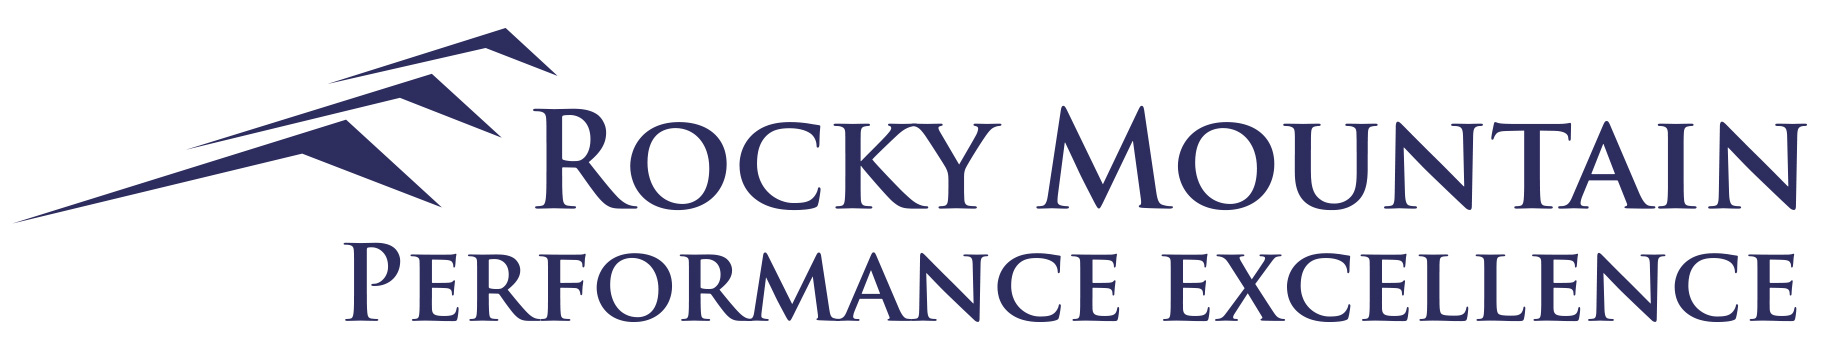 Rocky Mountain Performance Excellence